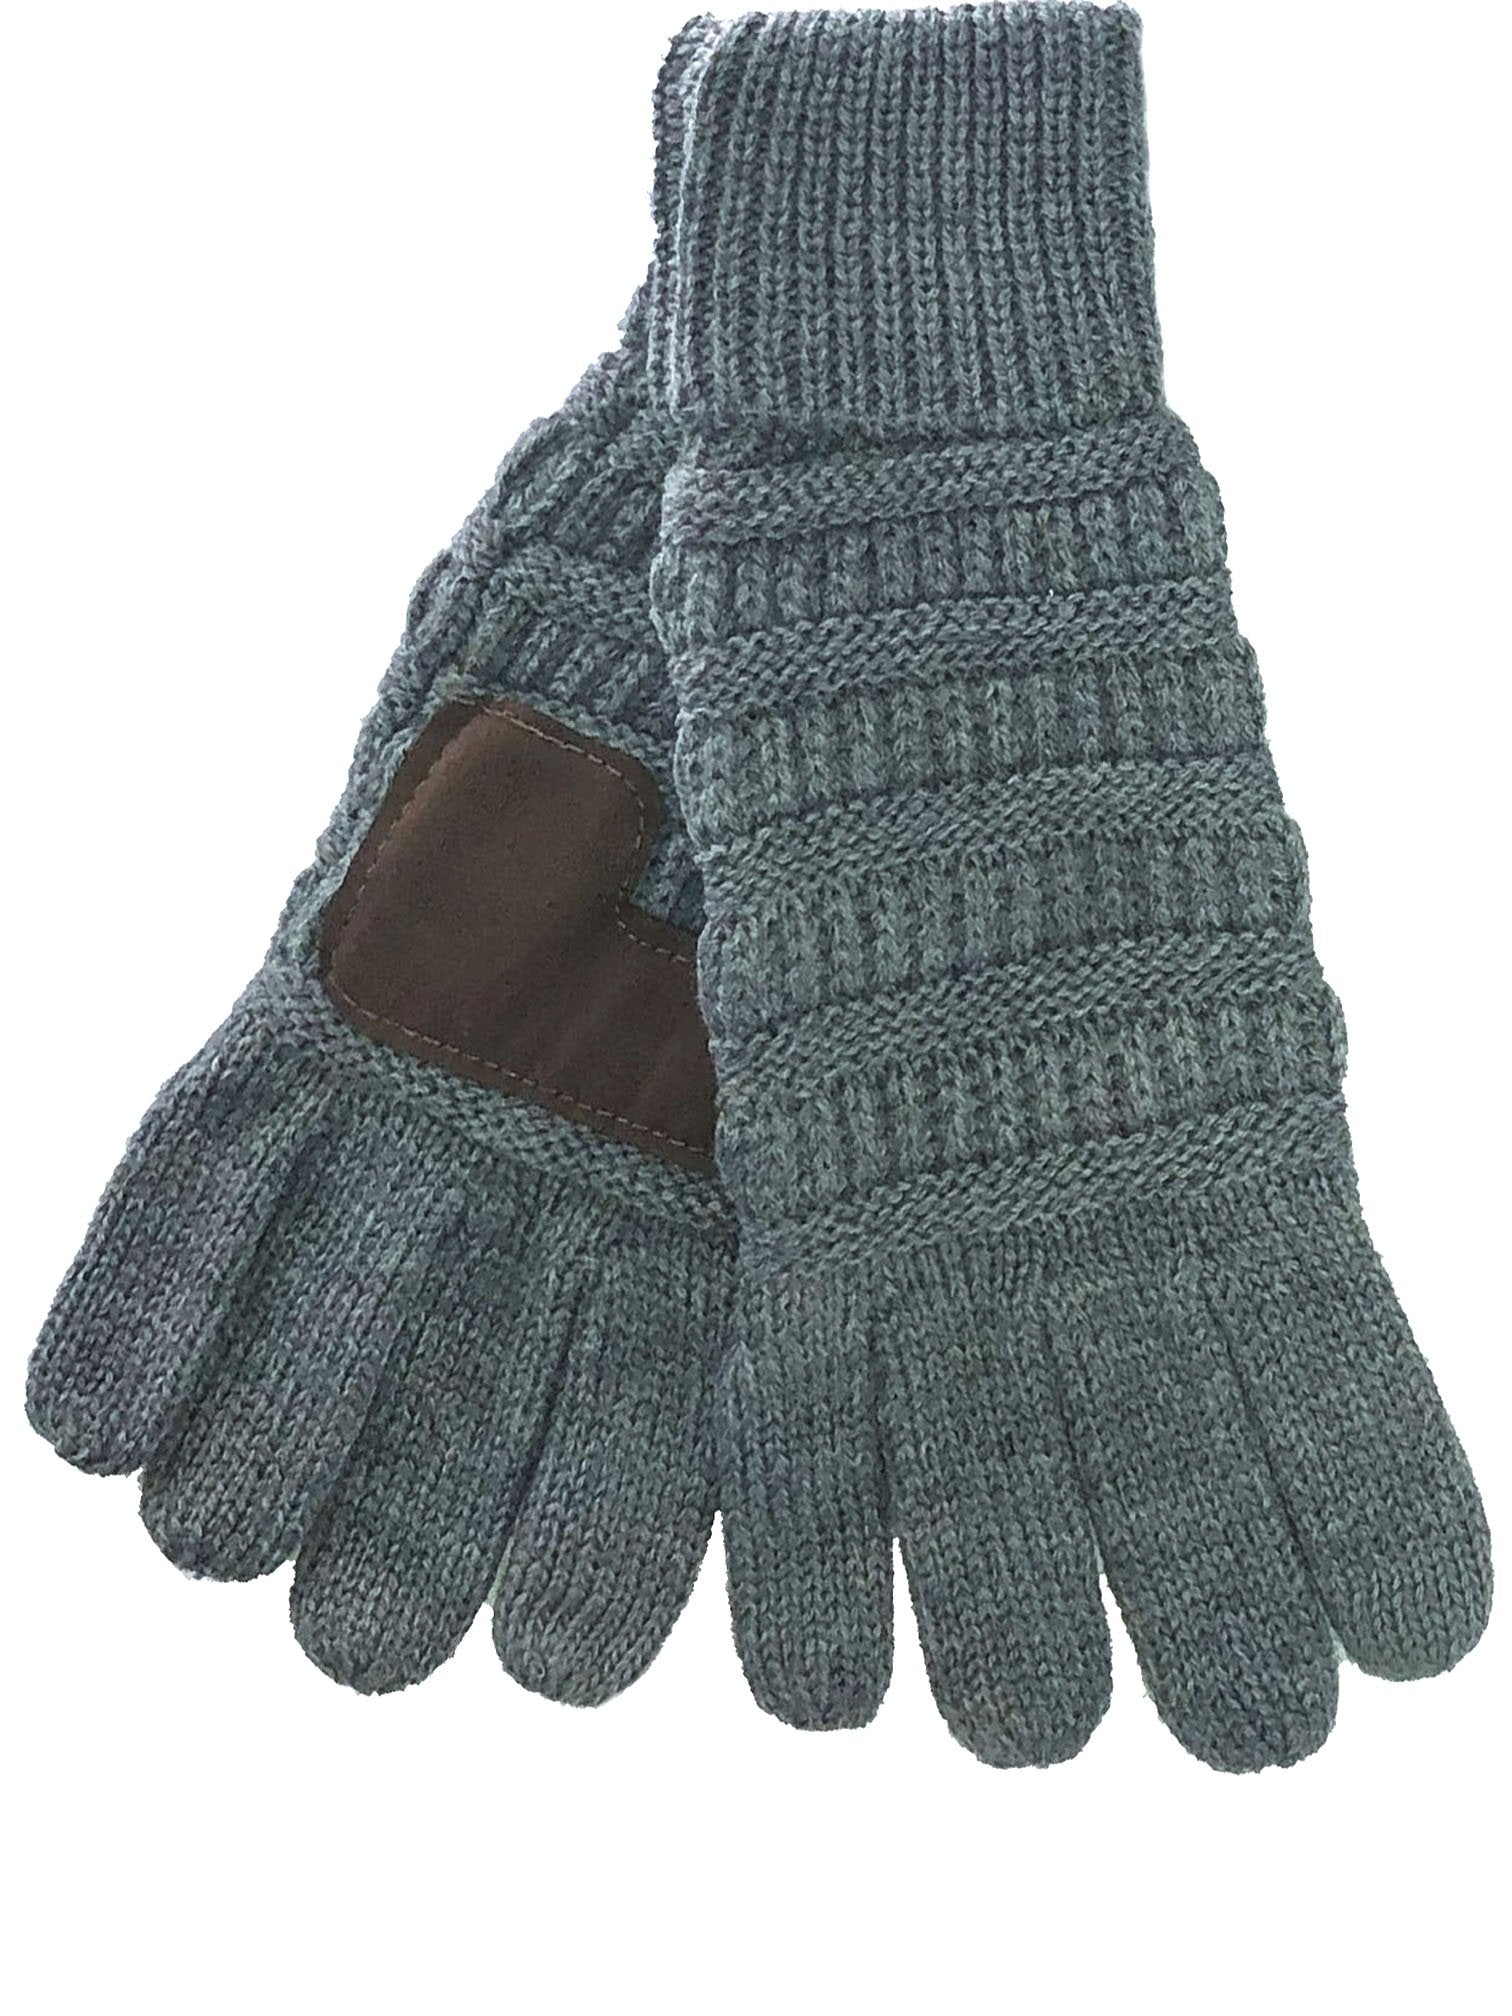 G-20 C.C Light Melange Grey Gloves